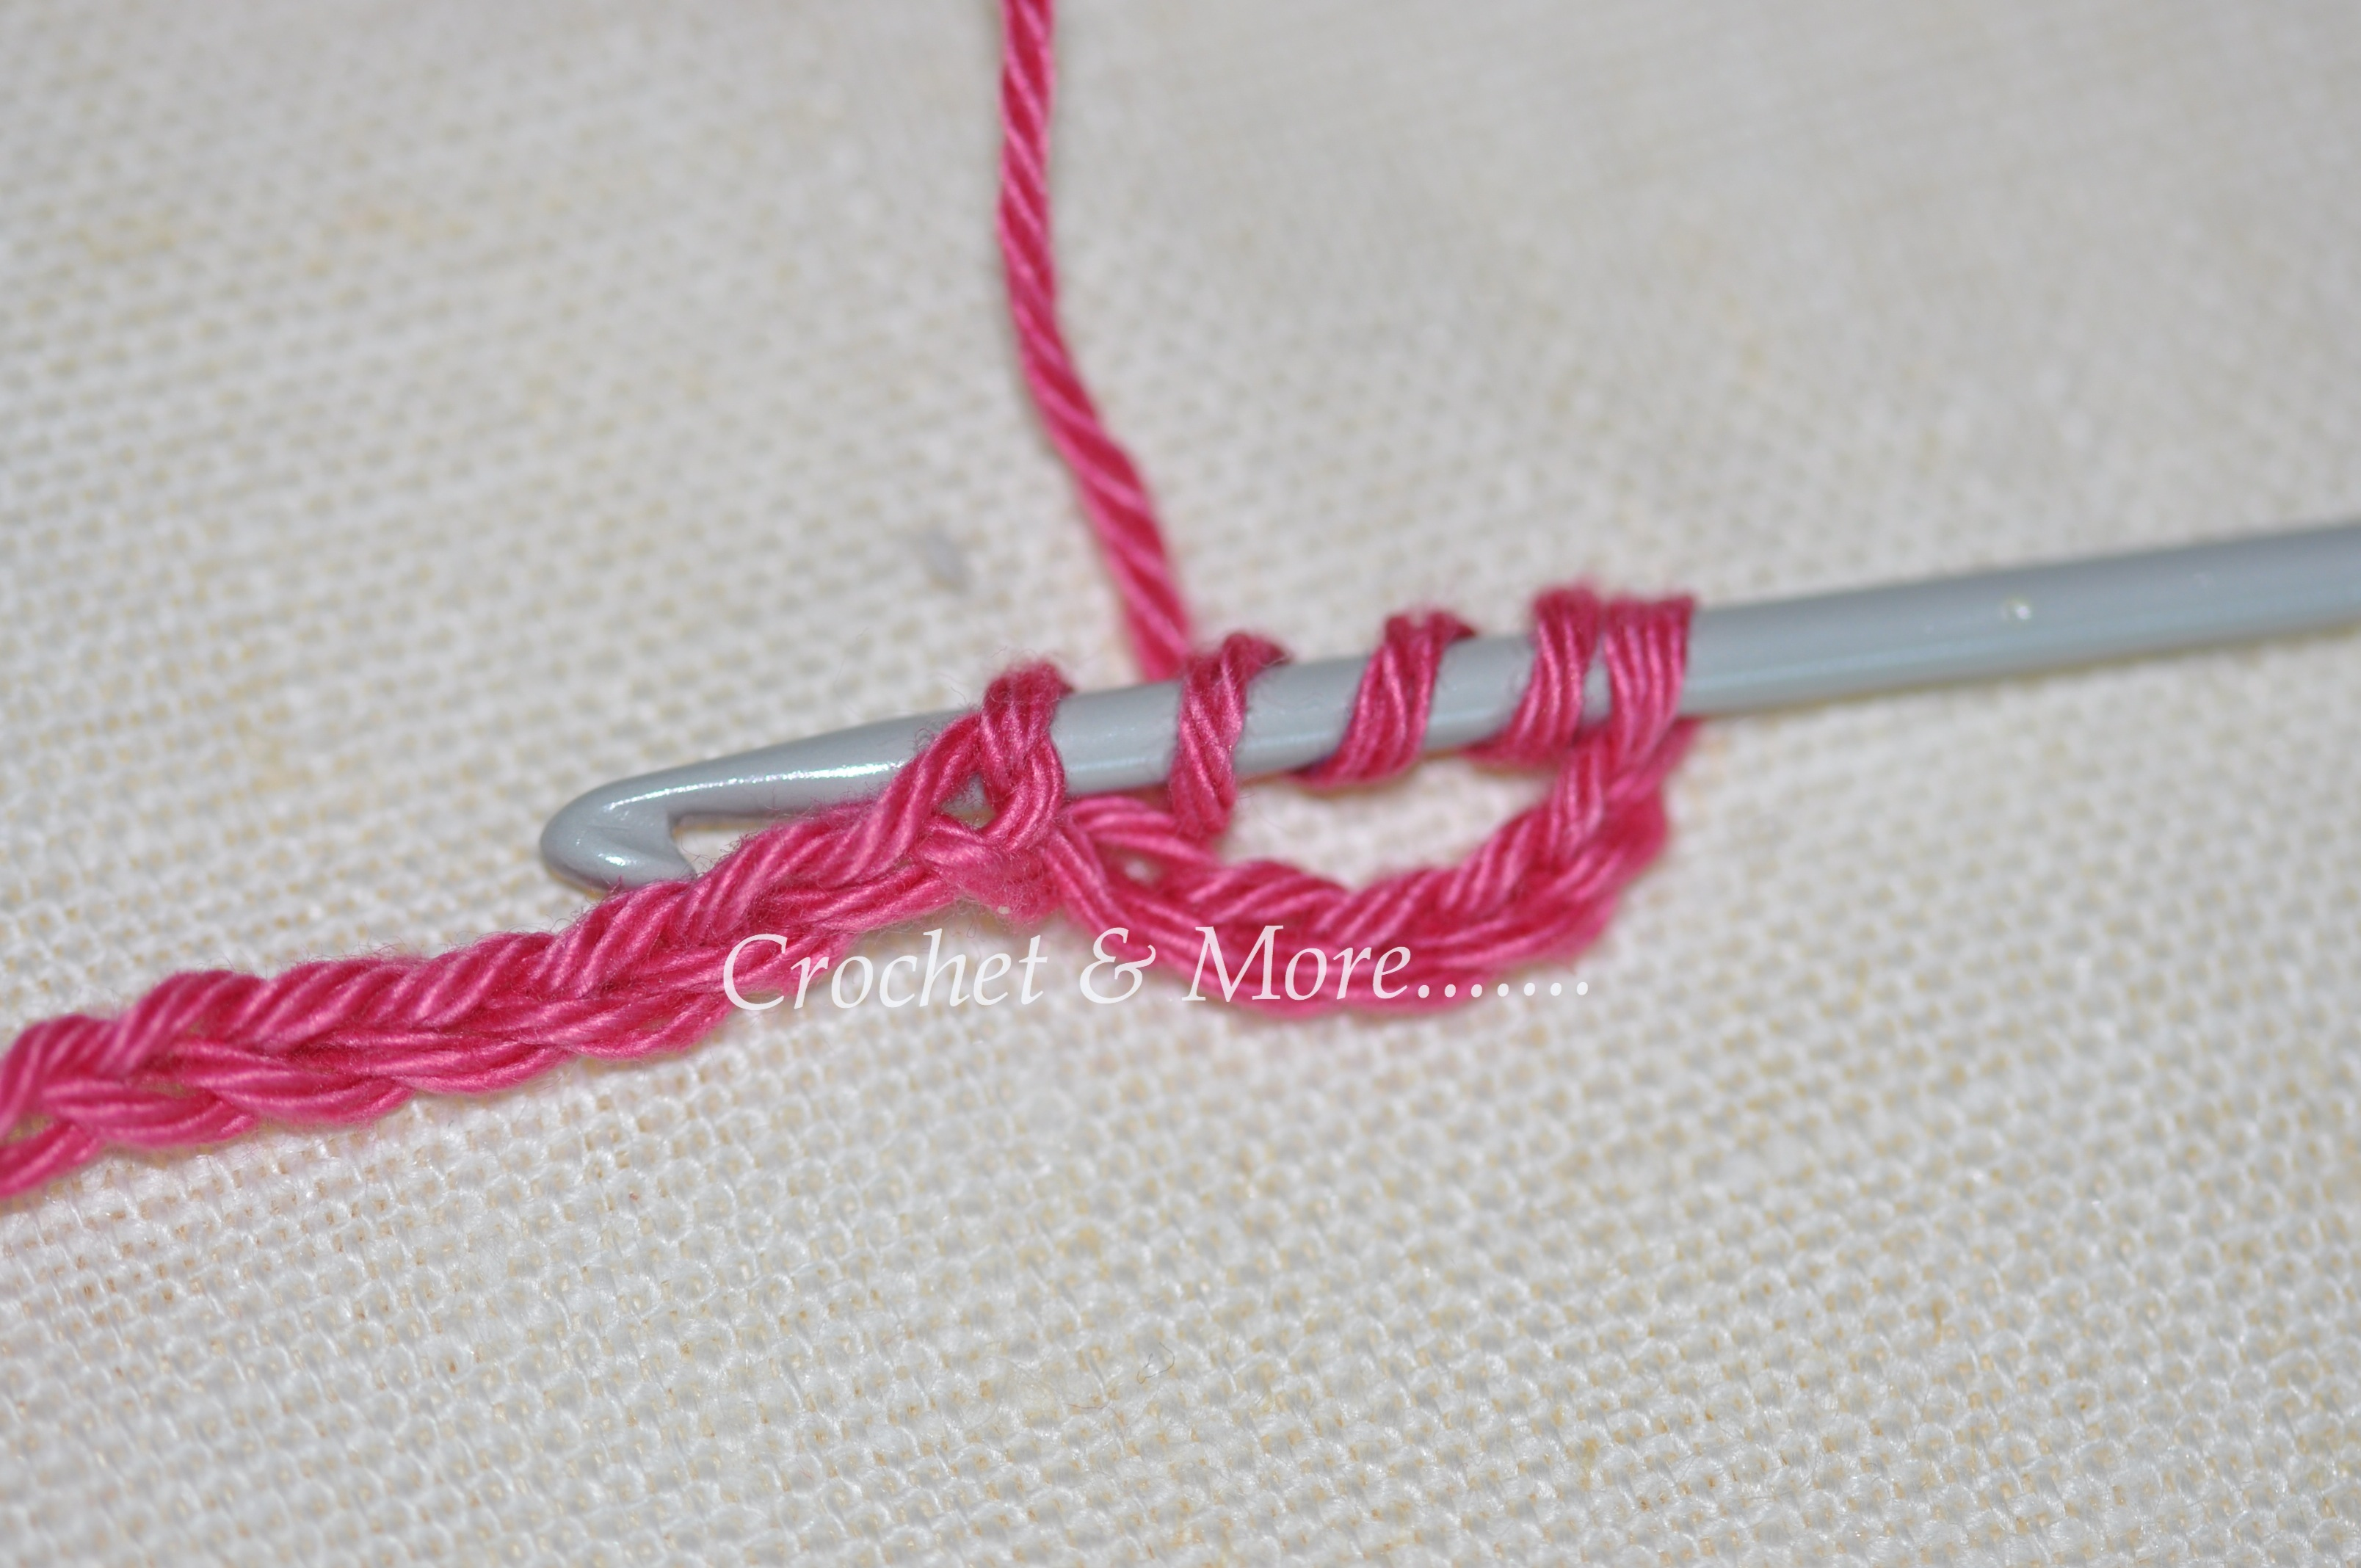 Crochet Stitches Tr : Beginner?s Basic Crochet Stitches - Tr and dtr crochetnmore